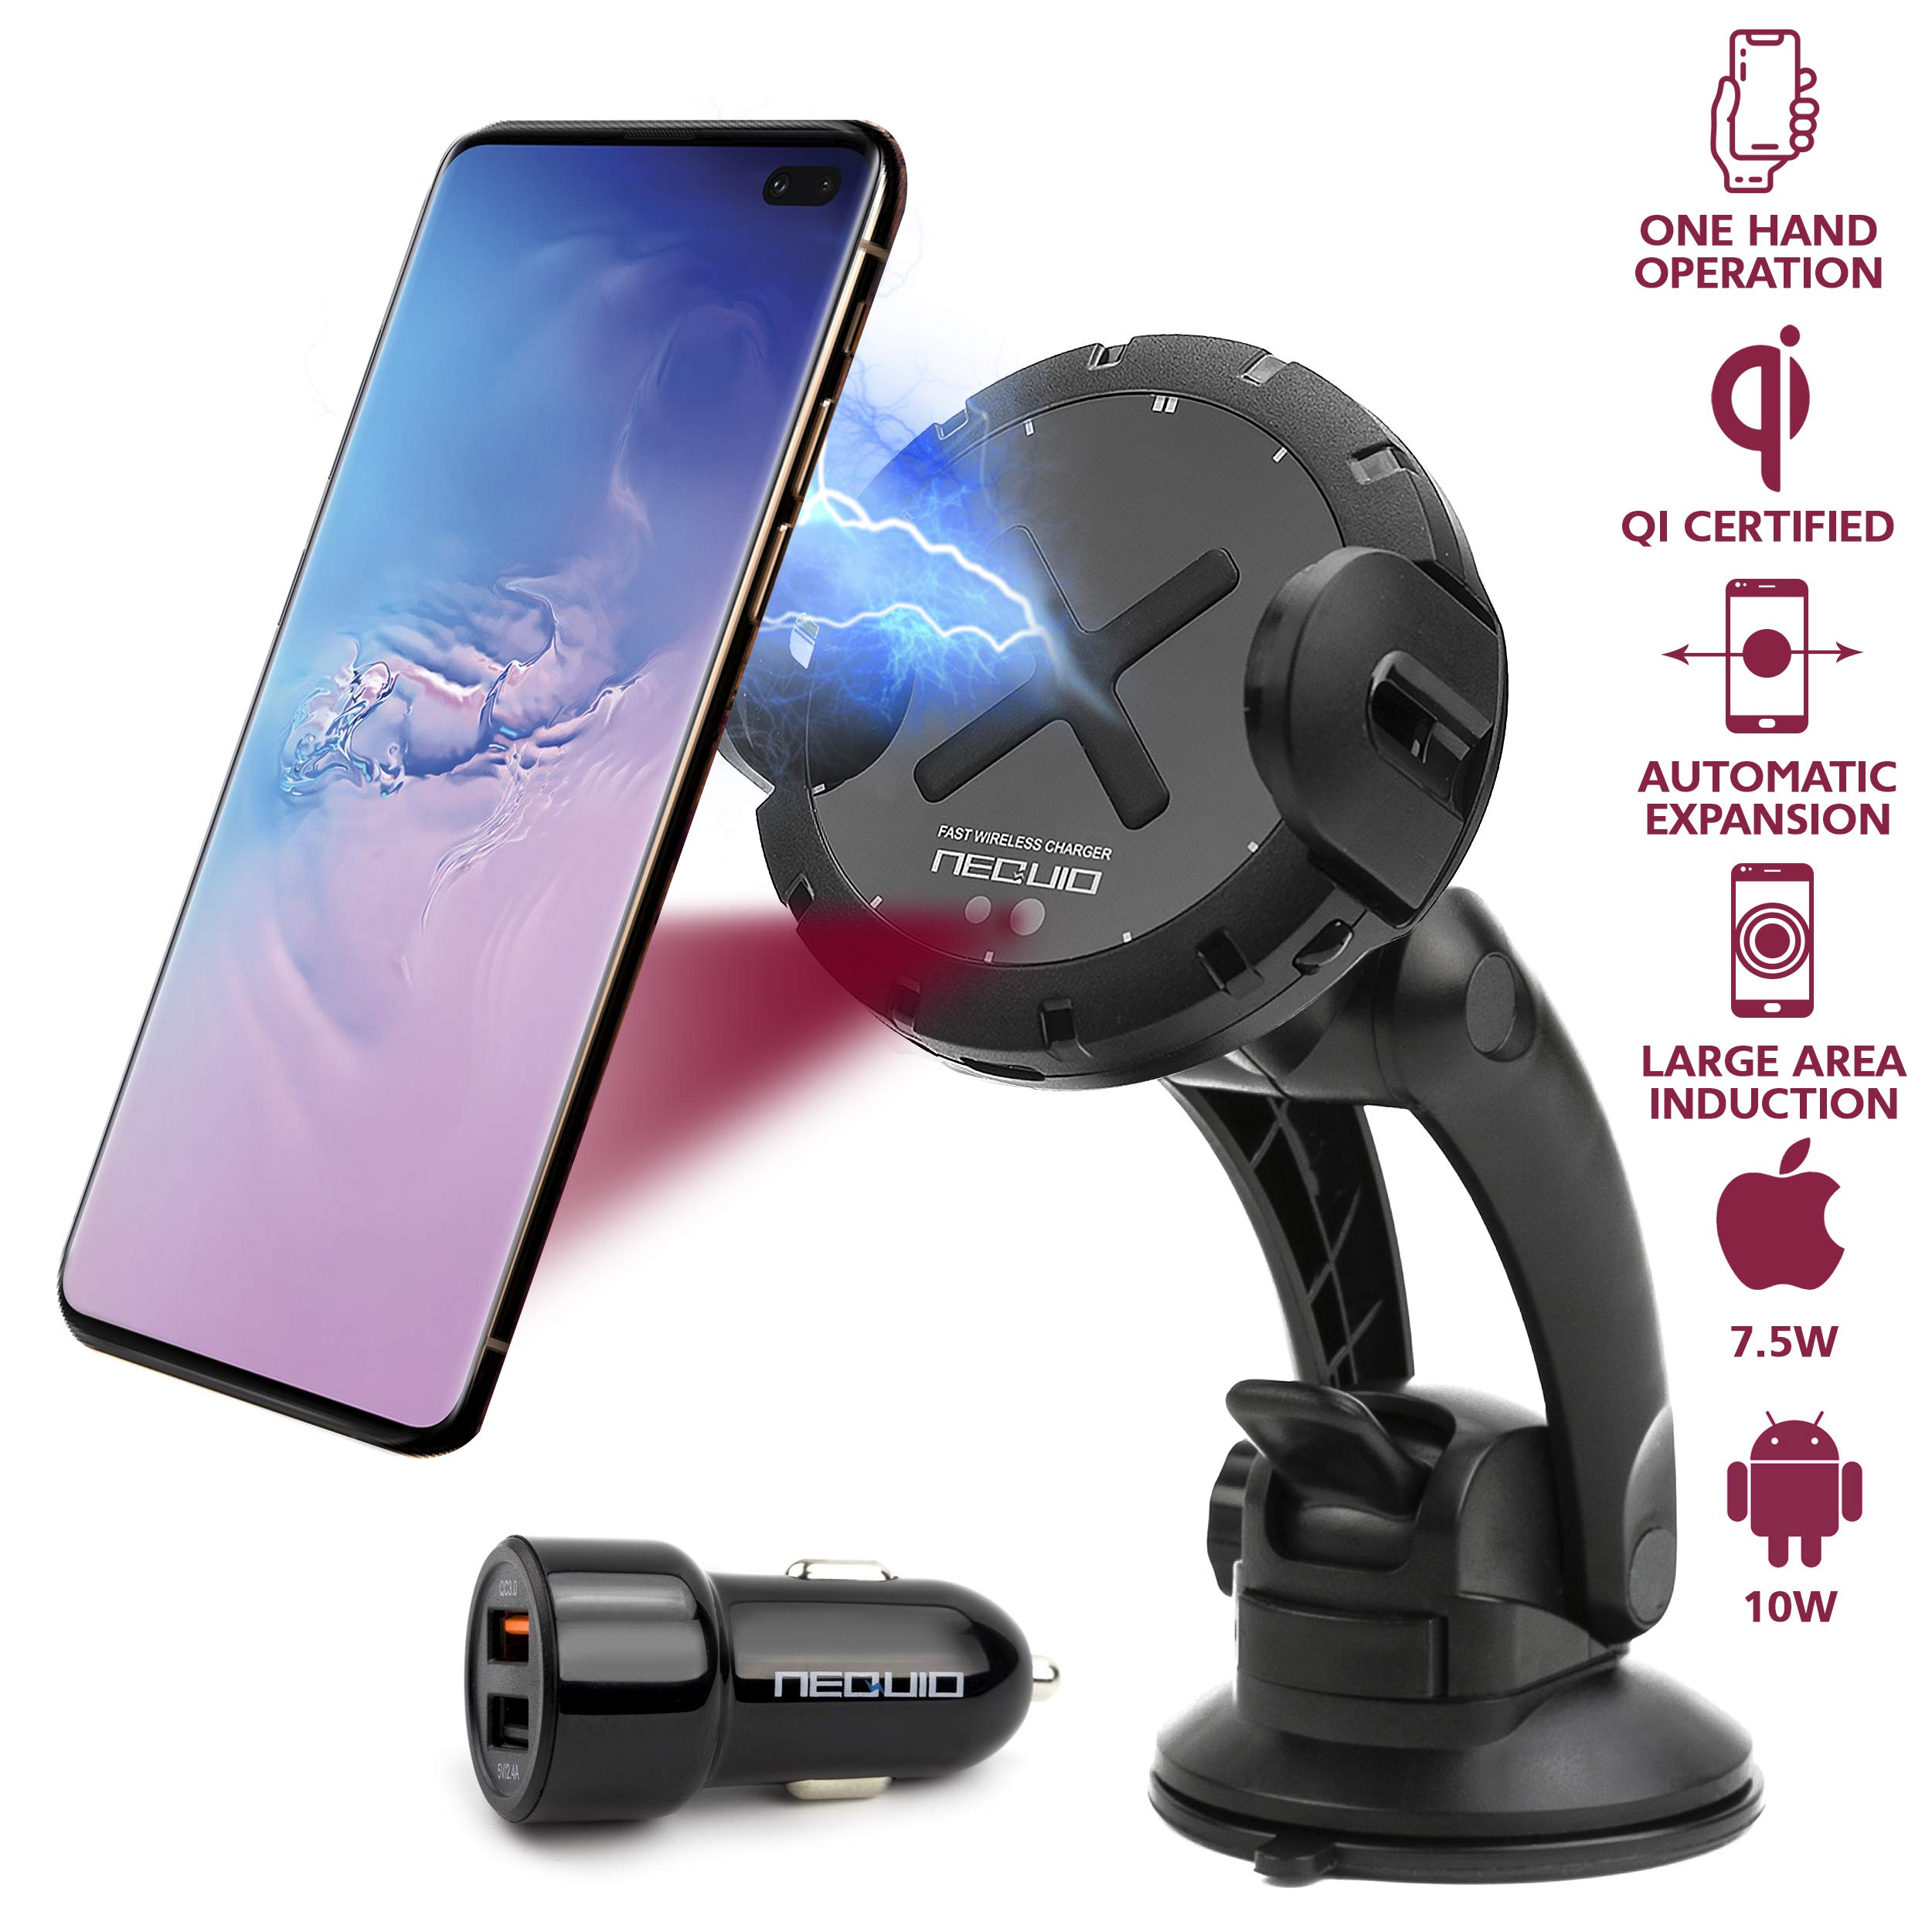 NEQUIO X Fast Wireless Charger Car Mount - Automatic Clamping Dashboard, Air Vent or Windshield Phone Holder for iPhone Xs Max/X/XR/8 Plus; Samsung Galaxy Note9/8/S10/S9/S8/S7 (Plus) & Qi Smartphones